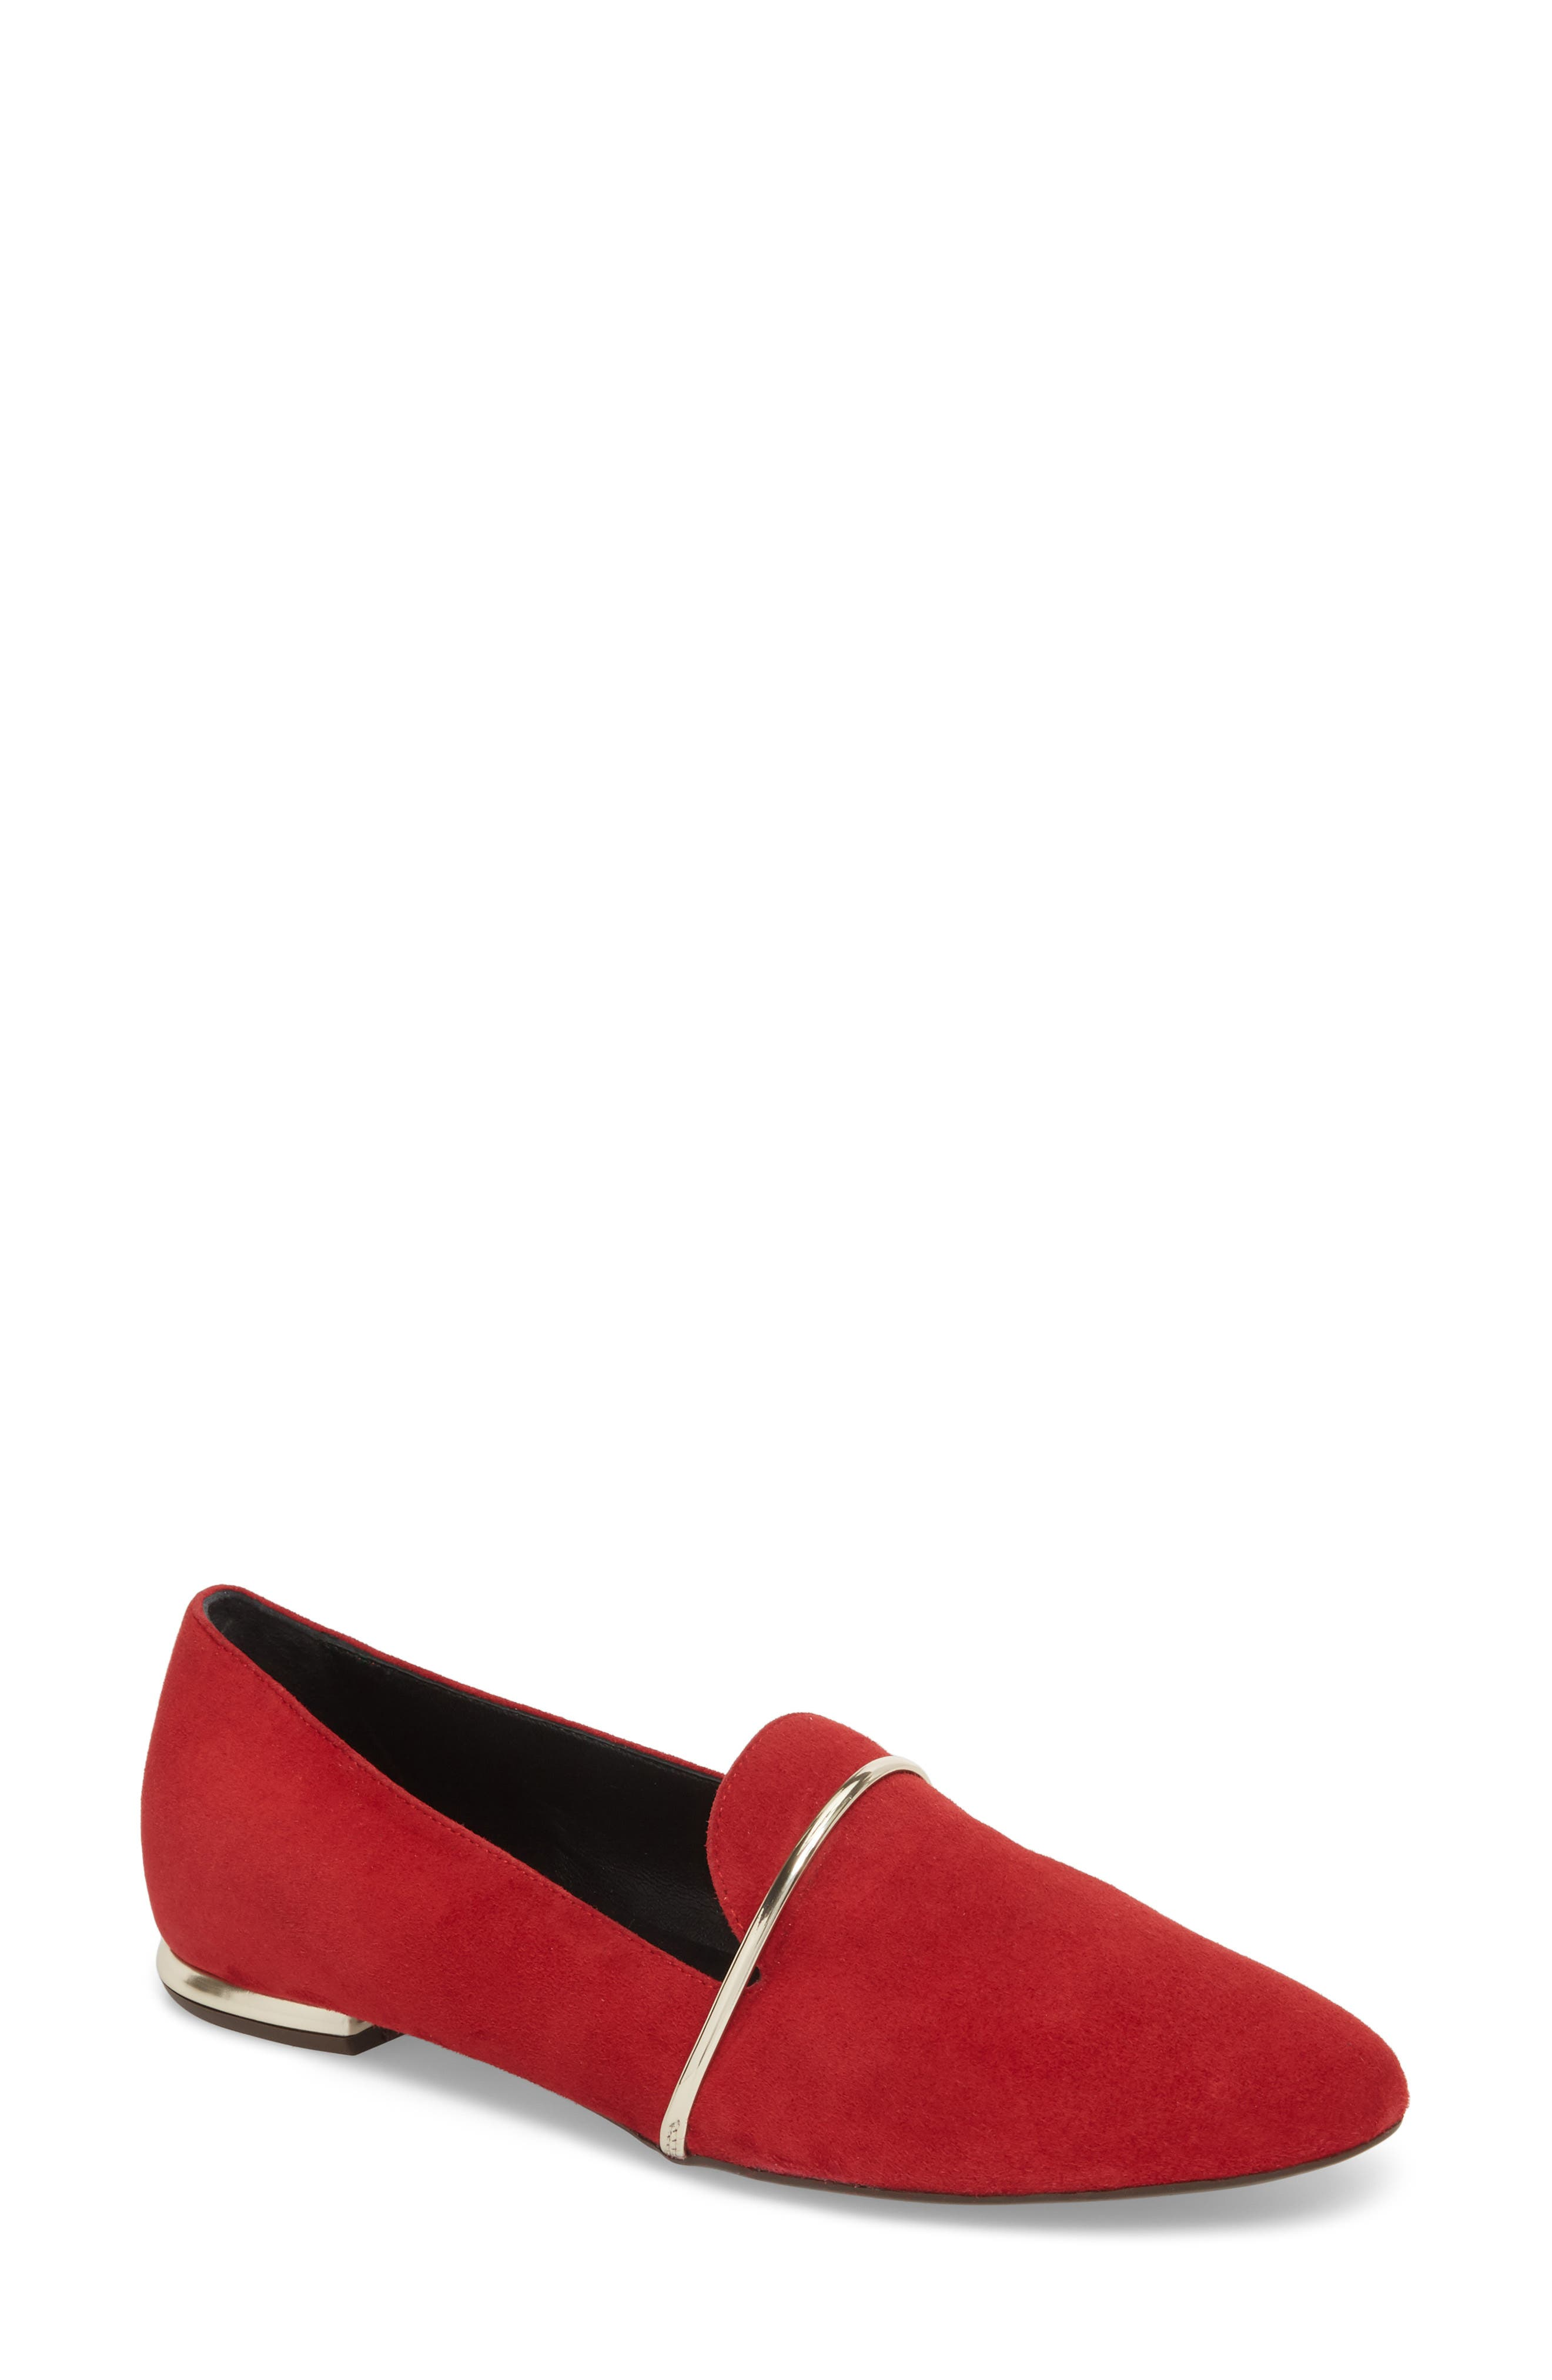 Smoking Slipper,                             Main thumbnail 1, color,                             RED SUEDE